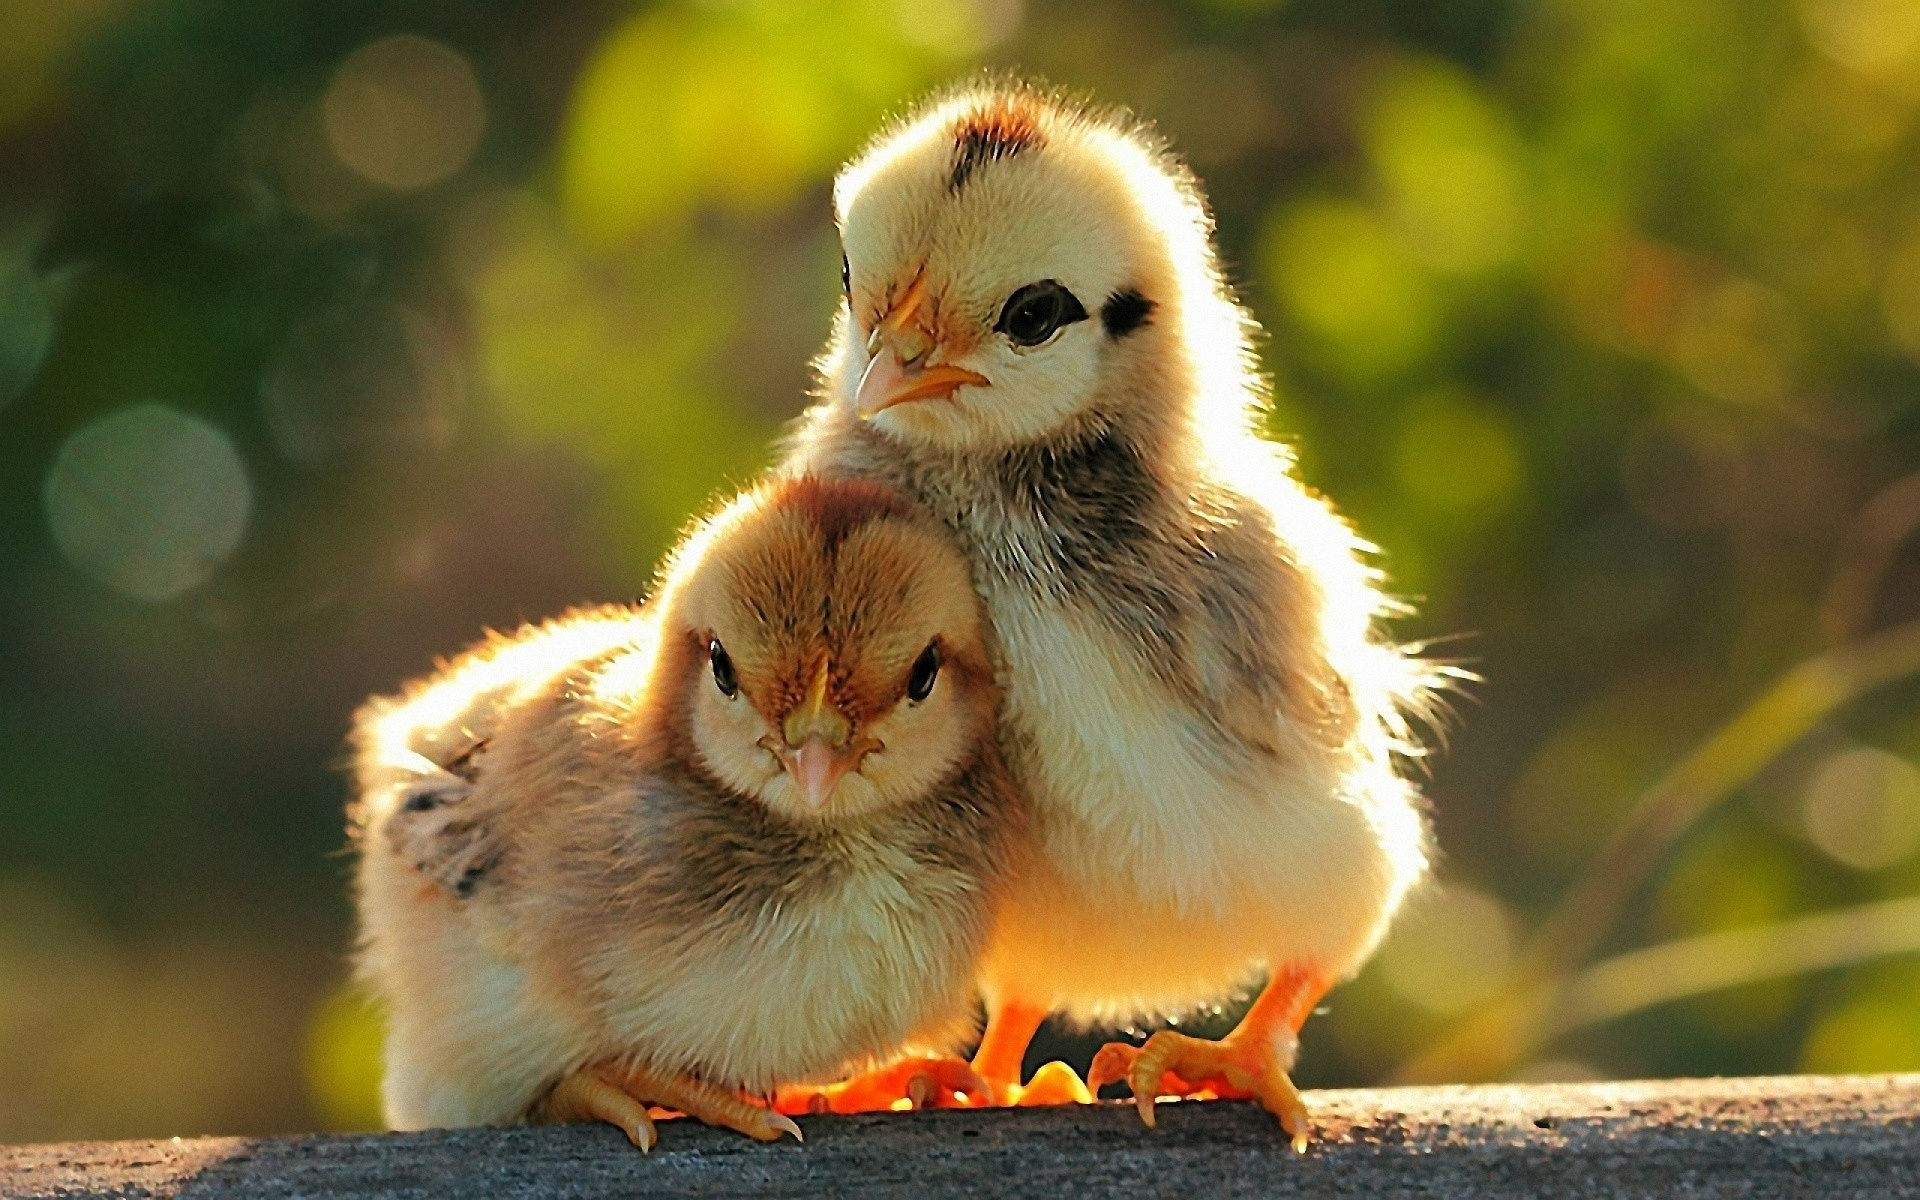 Chicken Photos & images